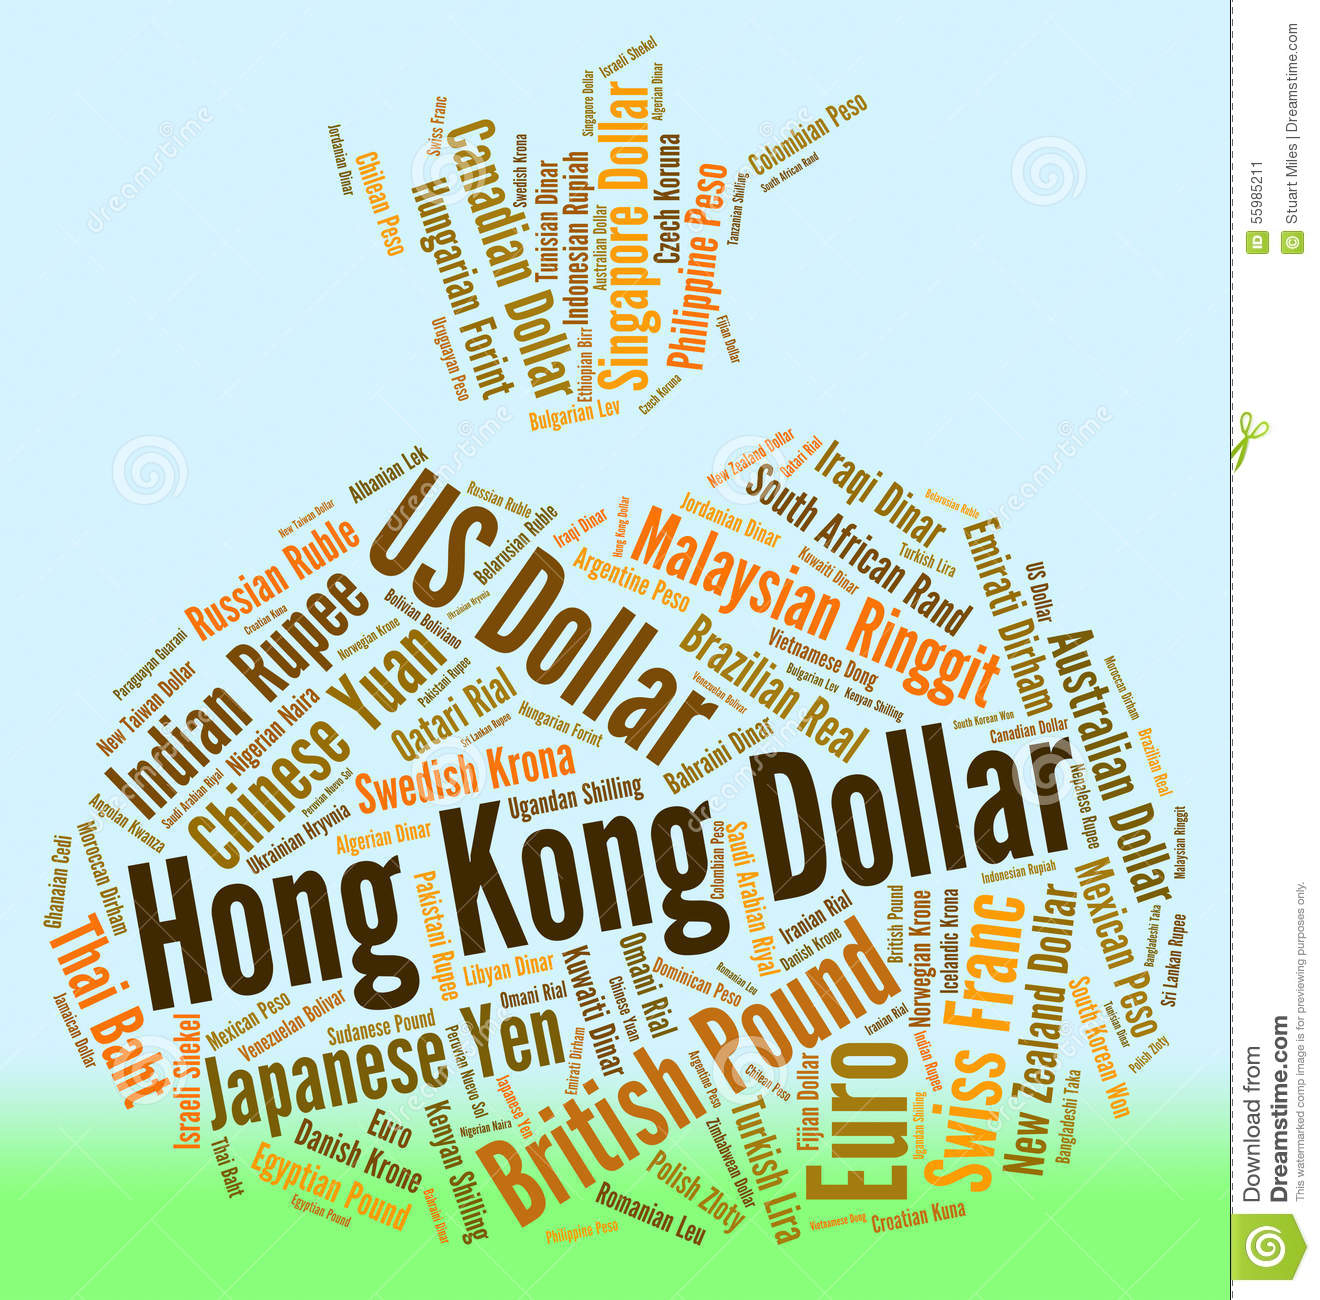 Forex options hong kong